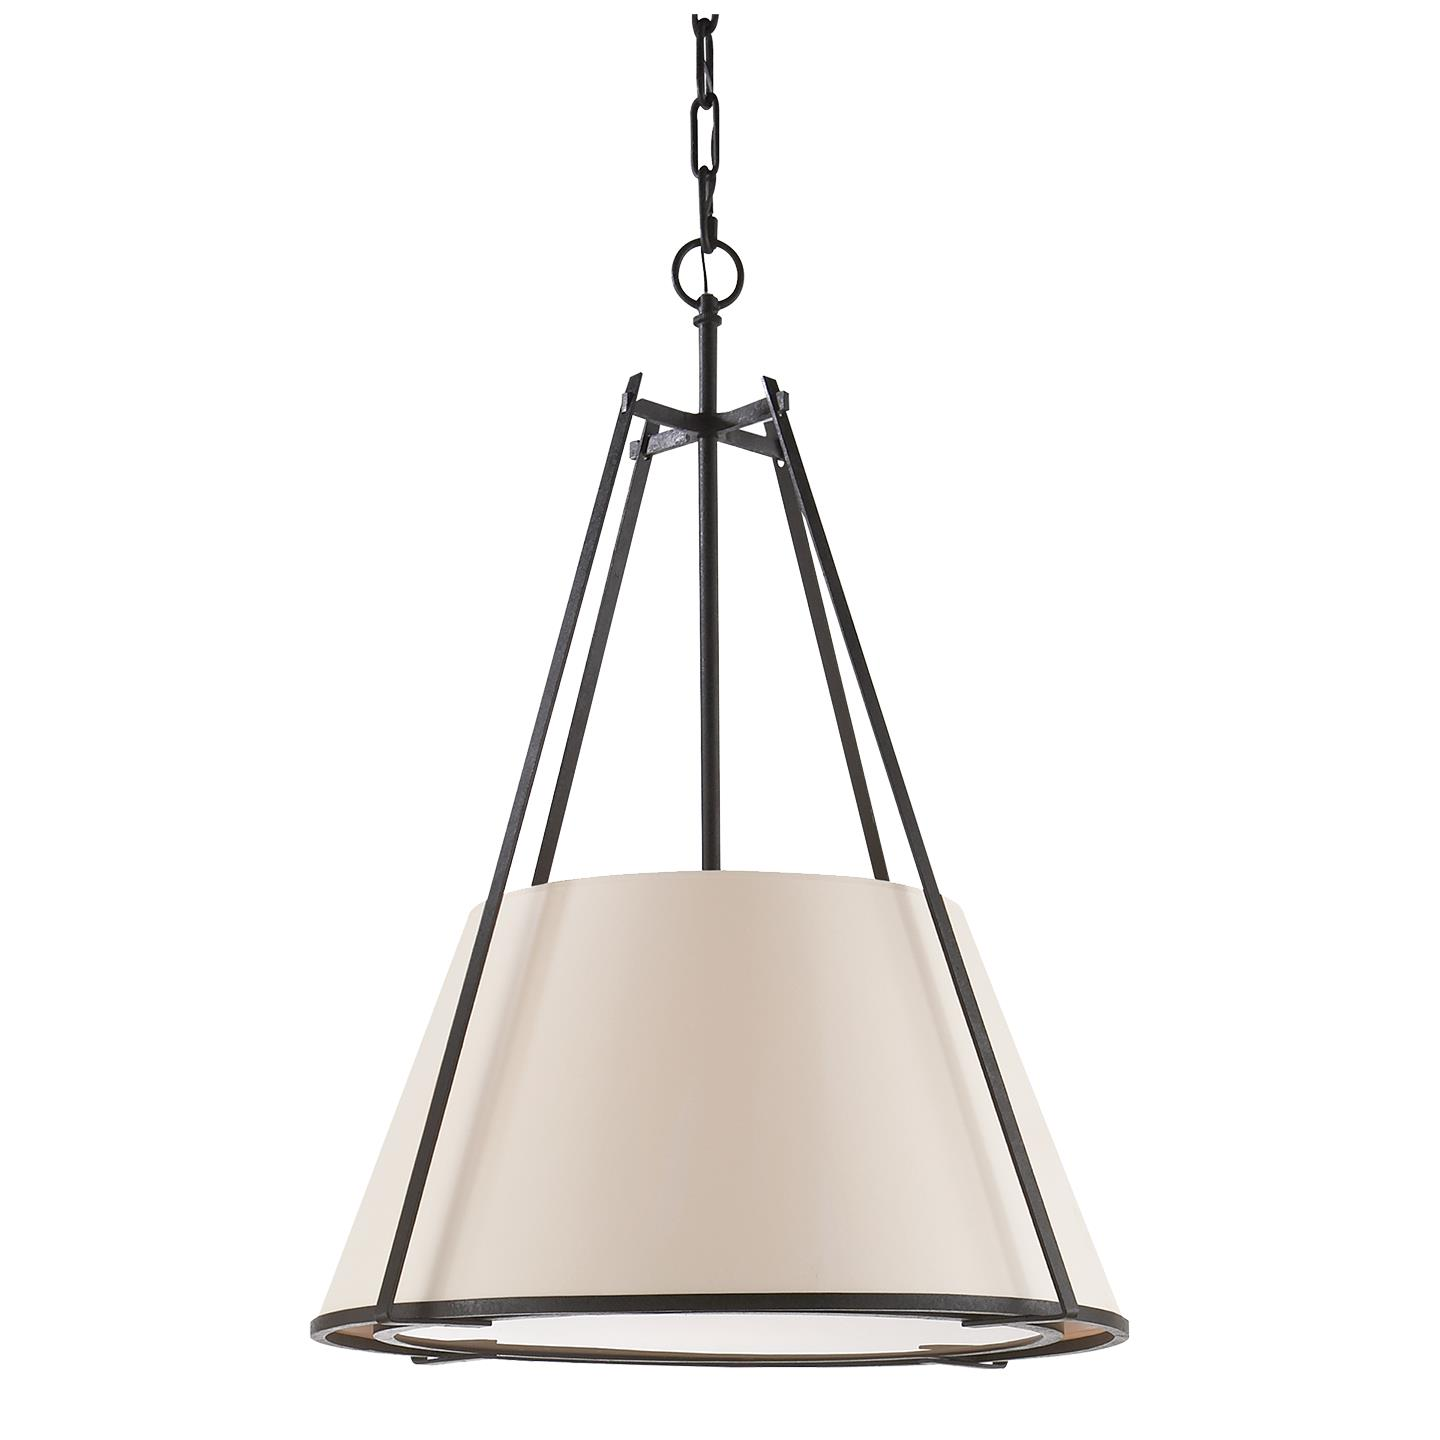 Aspen Large Conical Hanging Shade